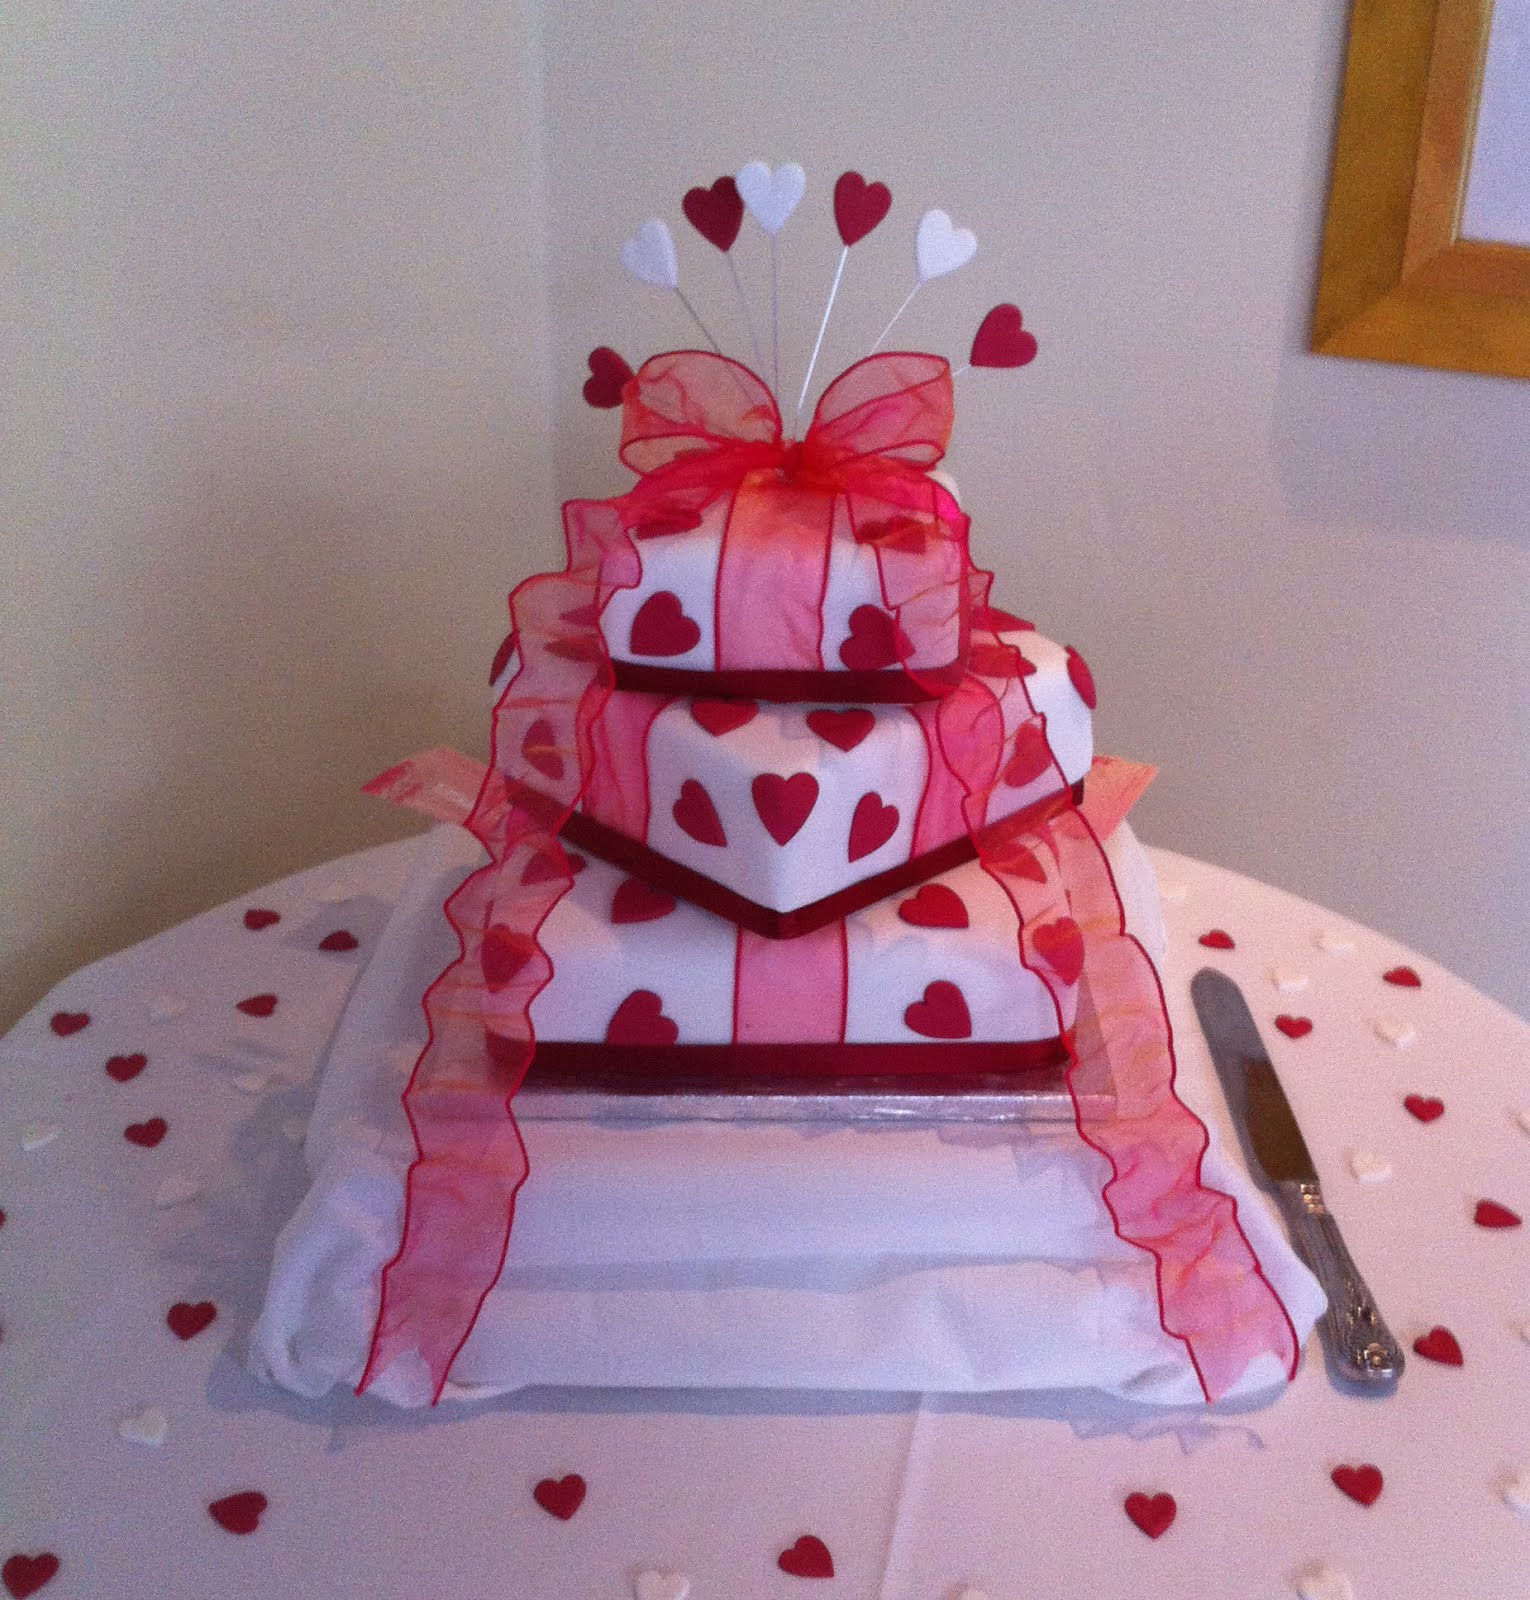 3 Tier Love Heart Wedding Cake